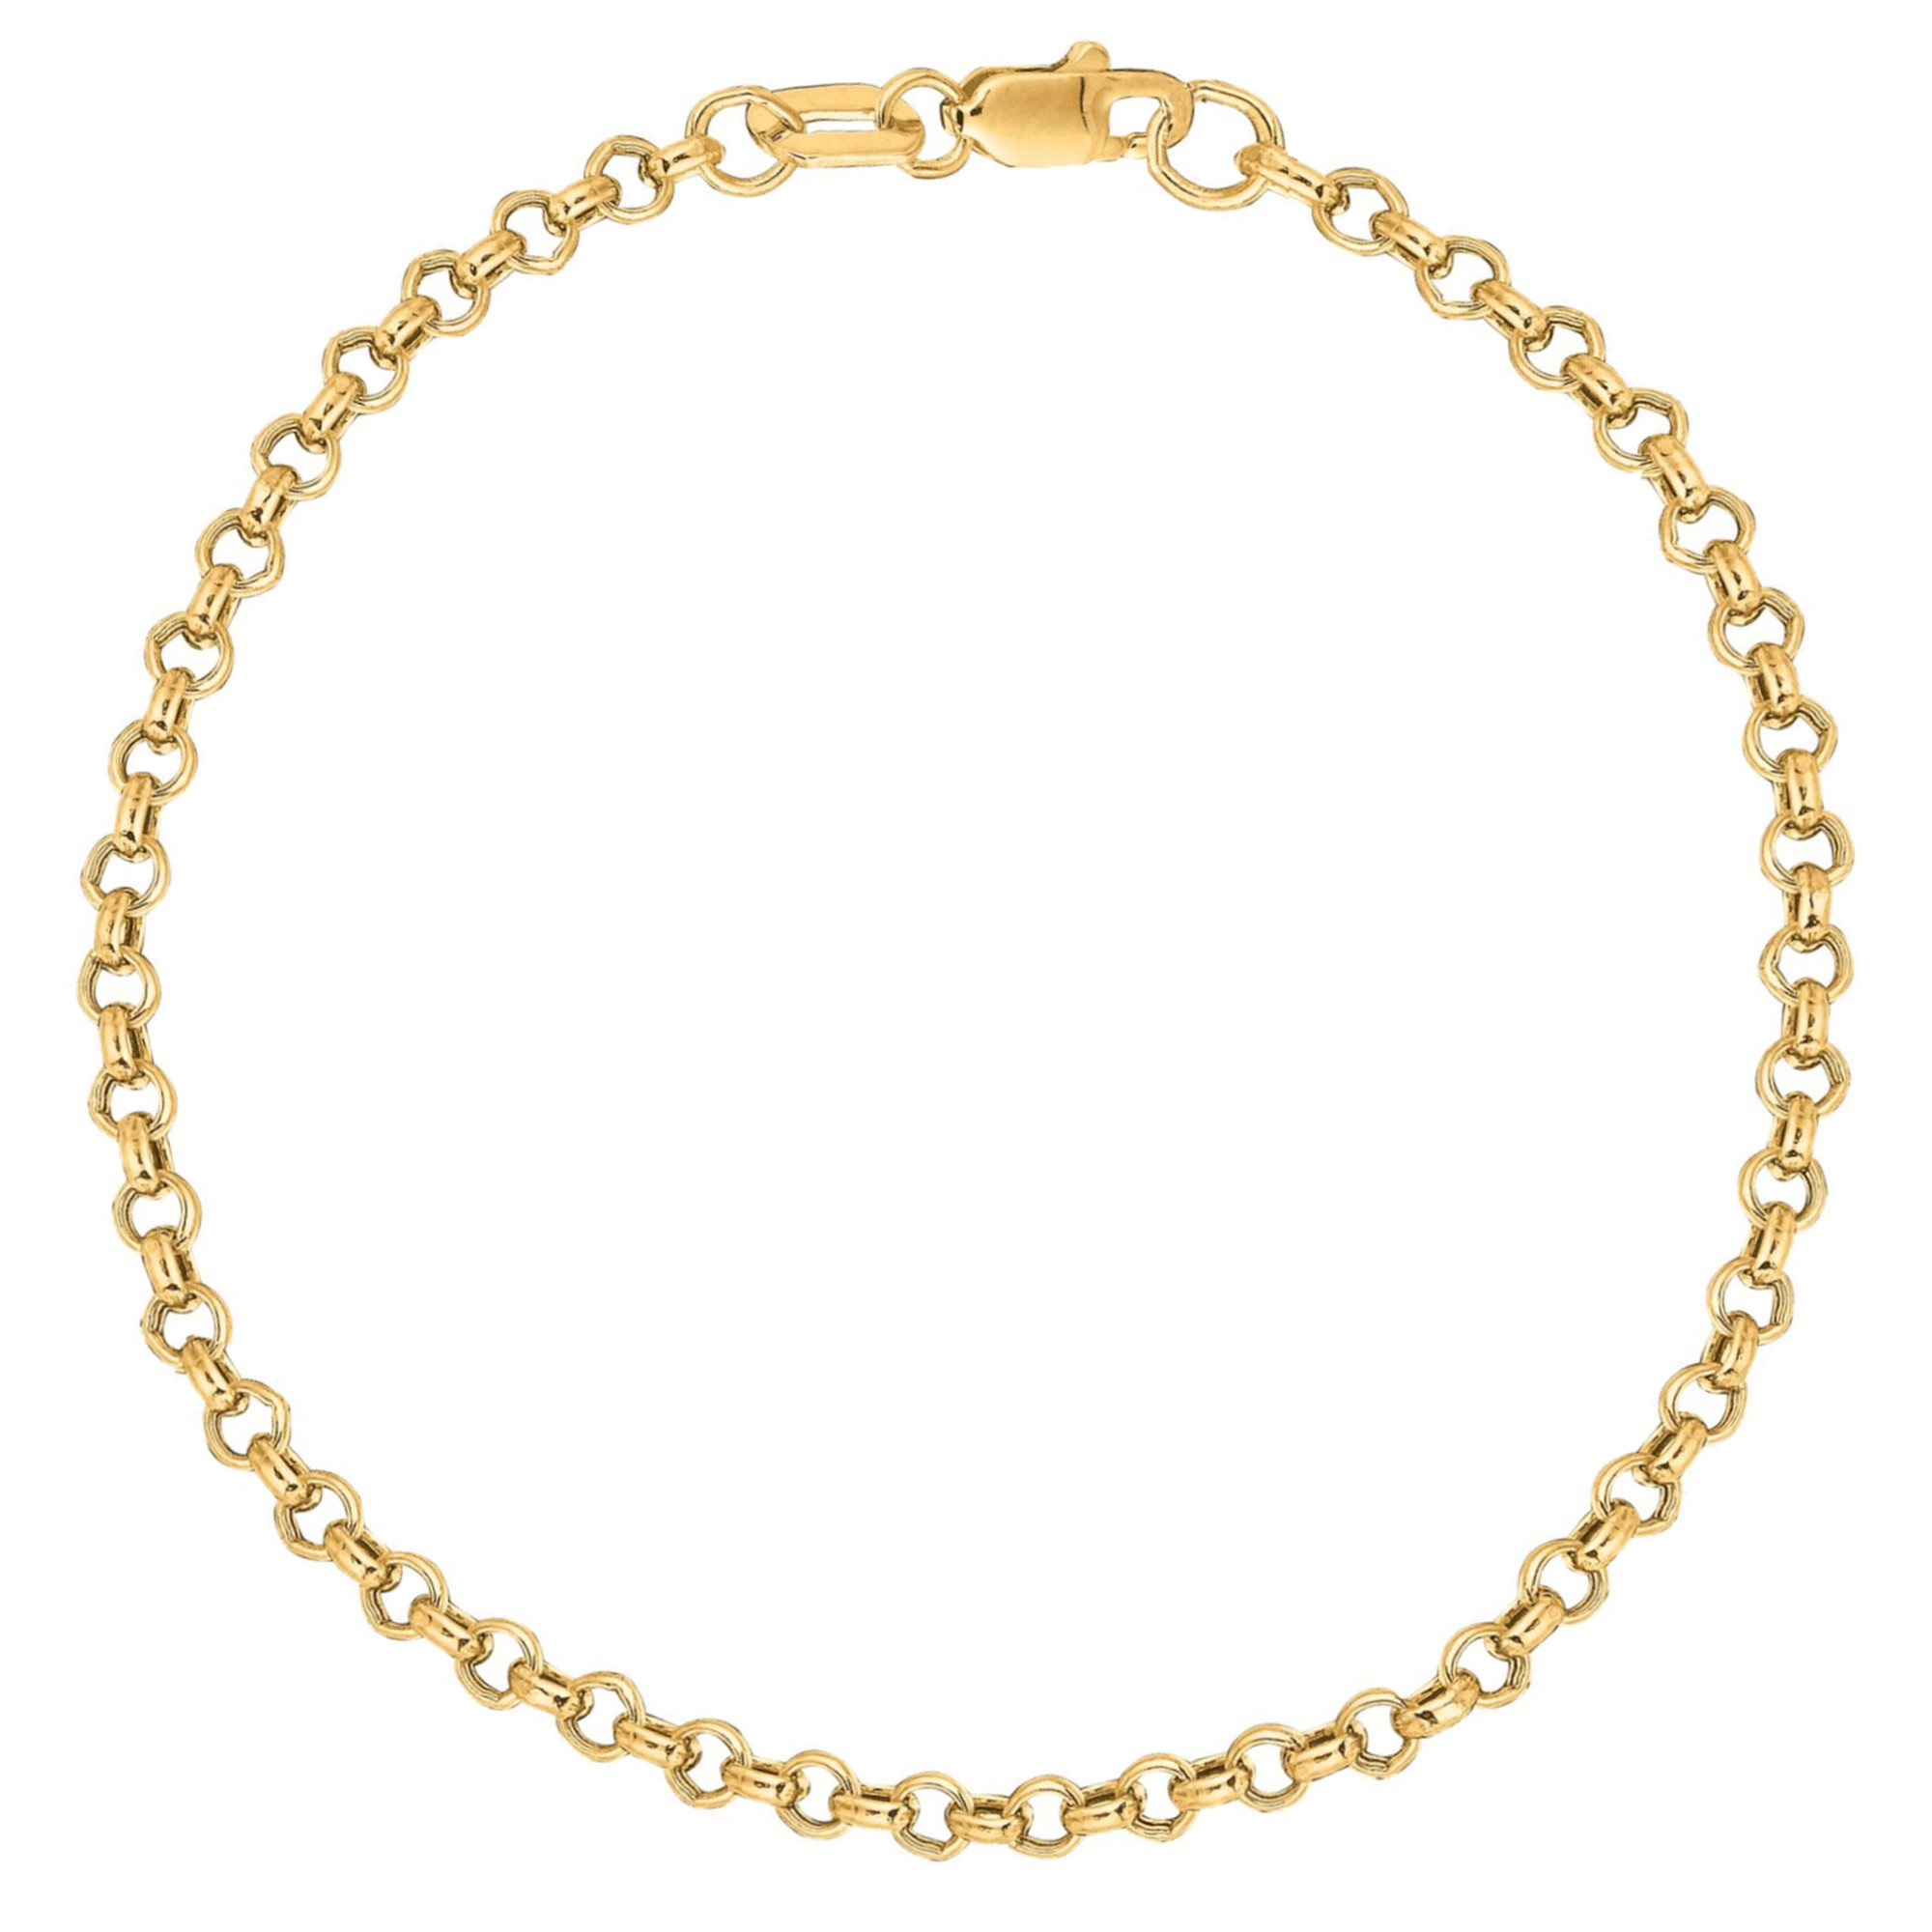 10k Solid Yellow Gold Rolo Chain Bracelet 7 Inches